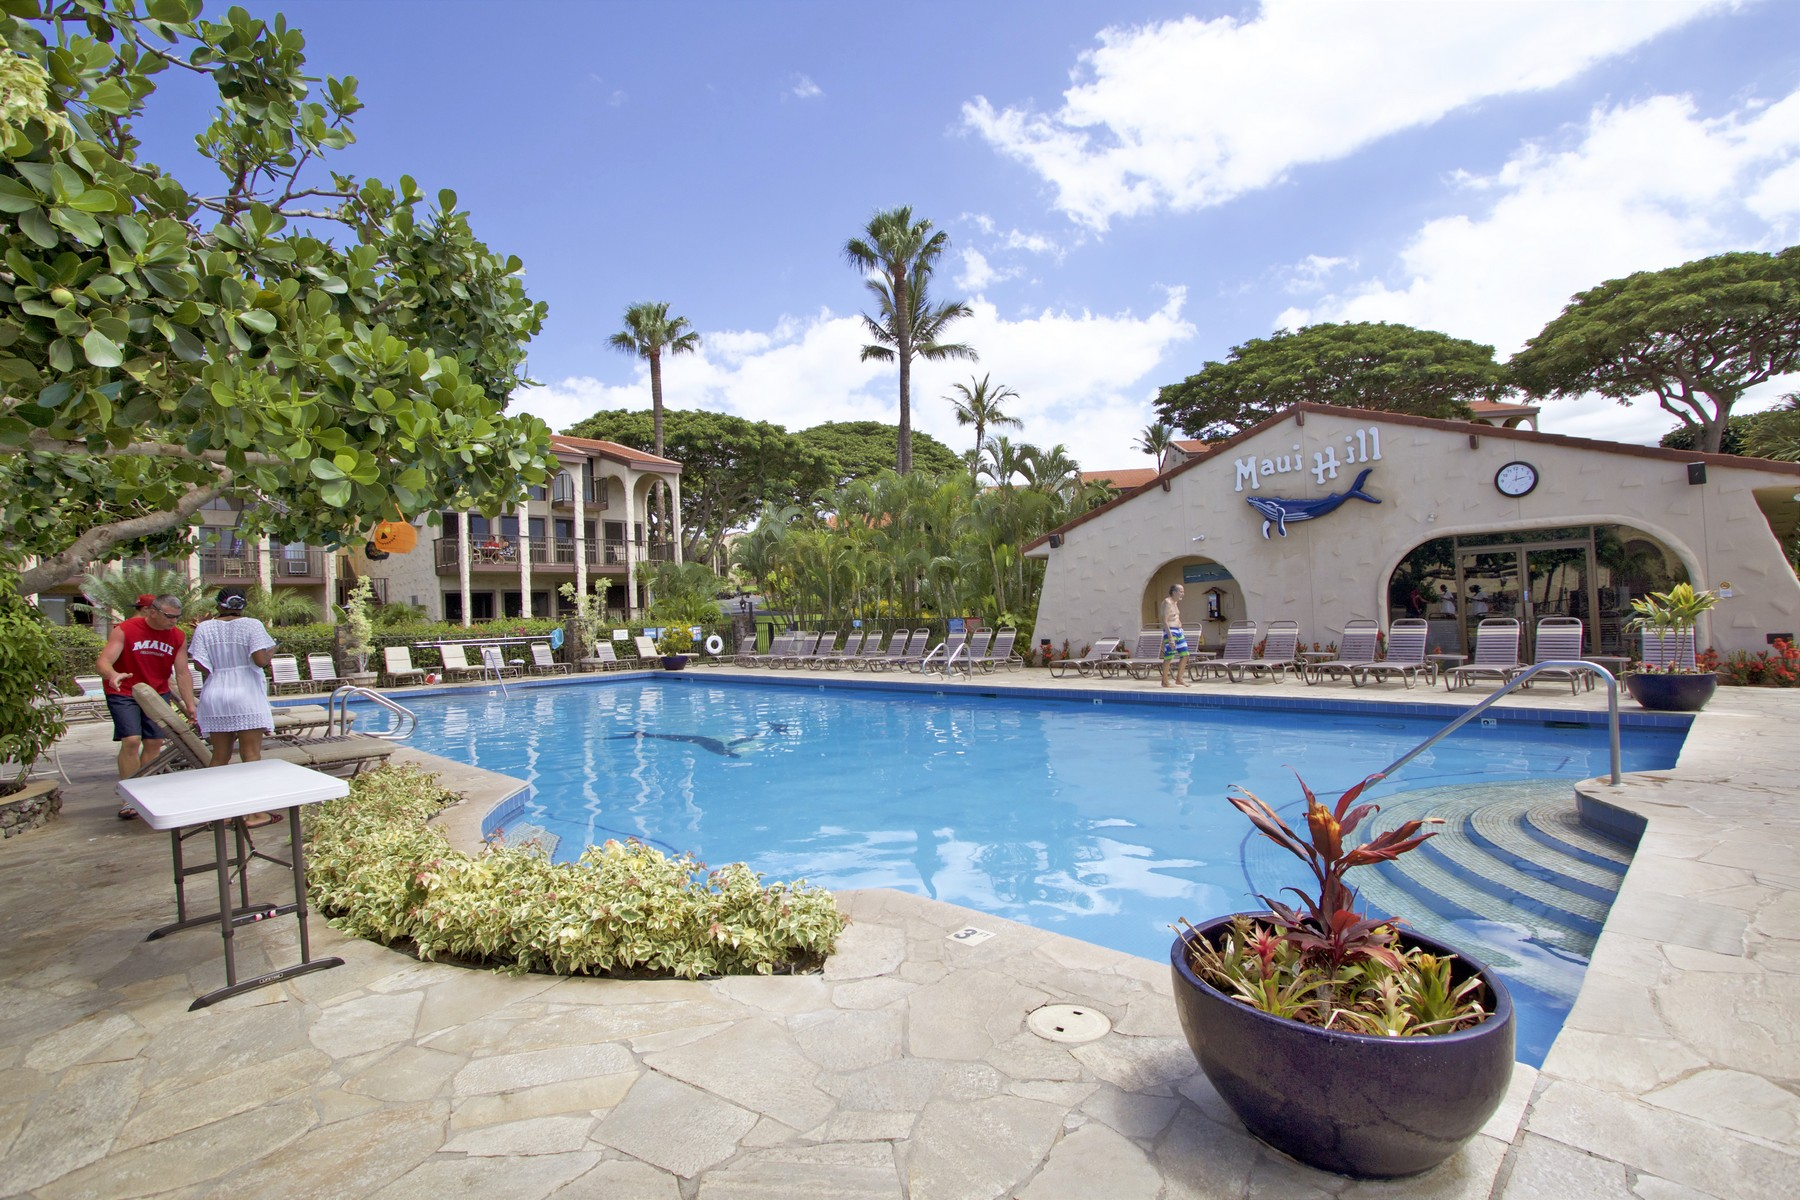 Condominium for Sale at Where Your Family & Friends Can Come Together 2881 S Kihei Road, Maui Hill #70 Kihei, Hawaii, 96753 United States